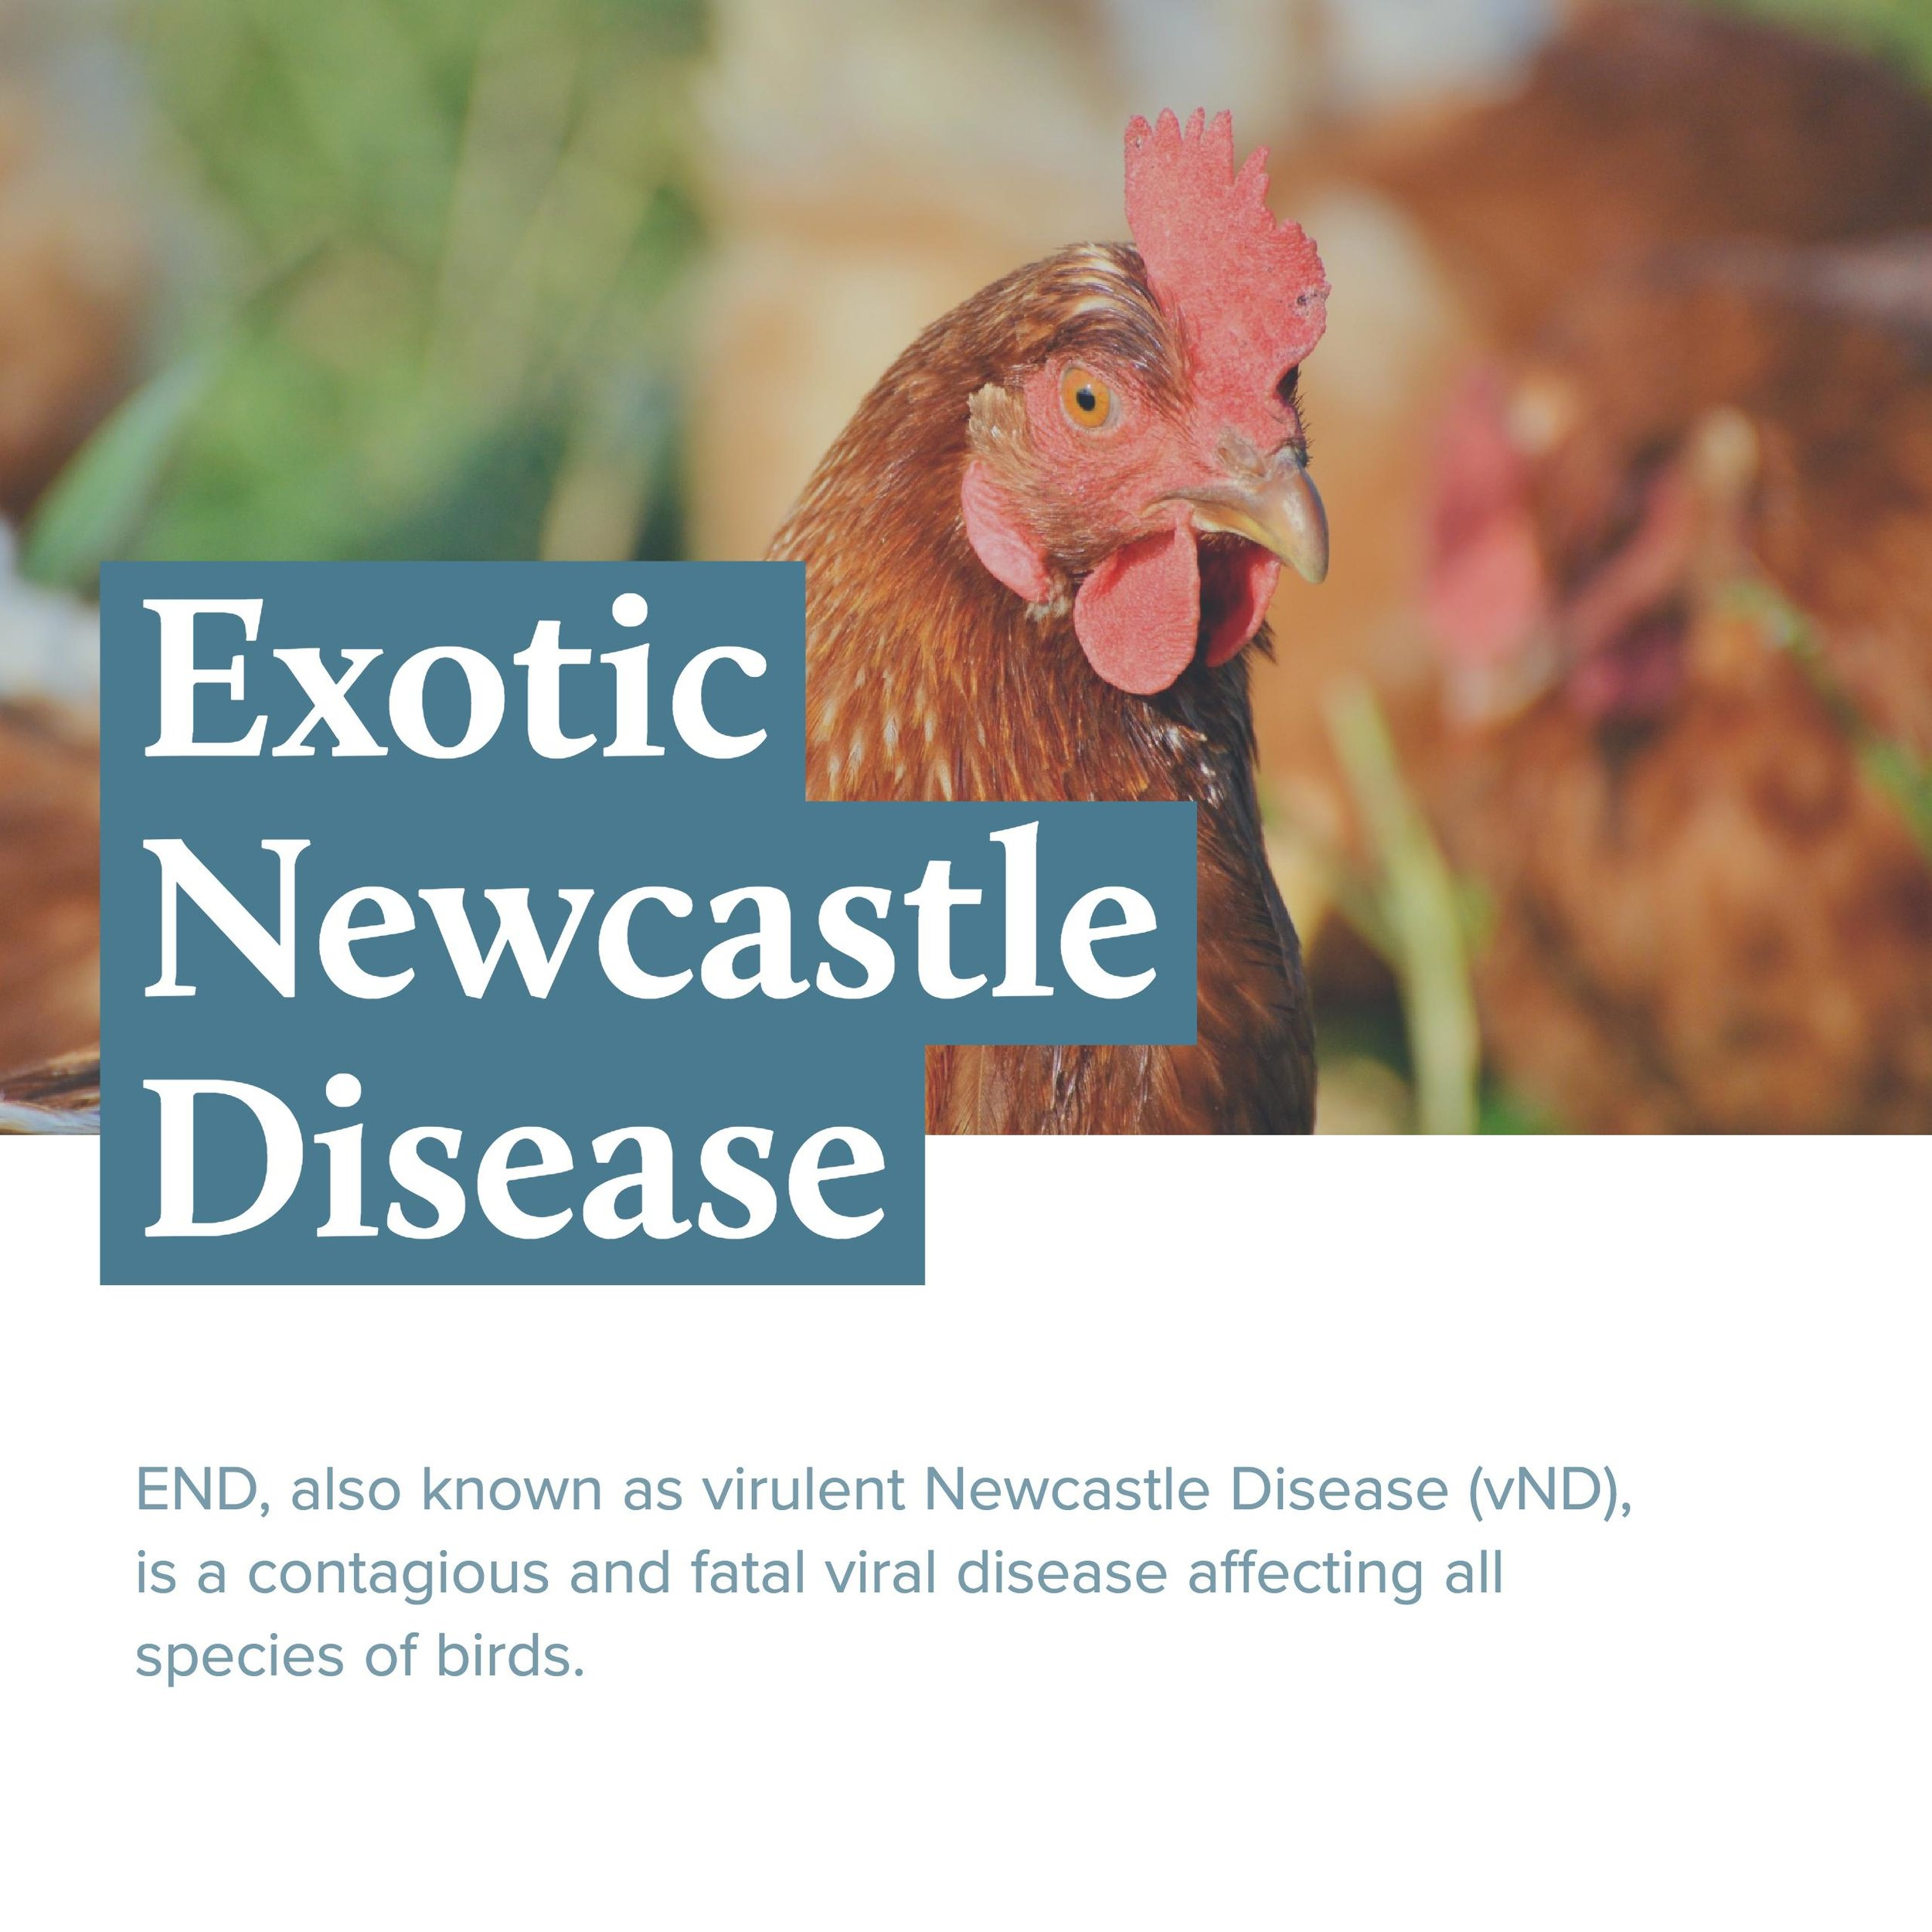 END, also known as virulent Newcastle Disease (vND), is a contagious and fatal viral disease affecting all species of birds.